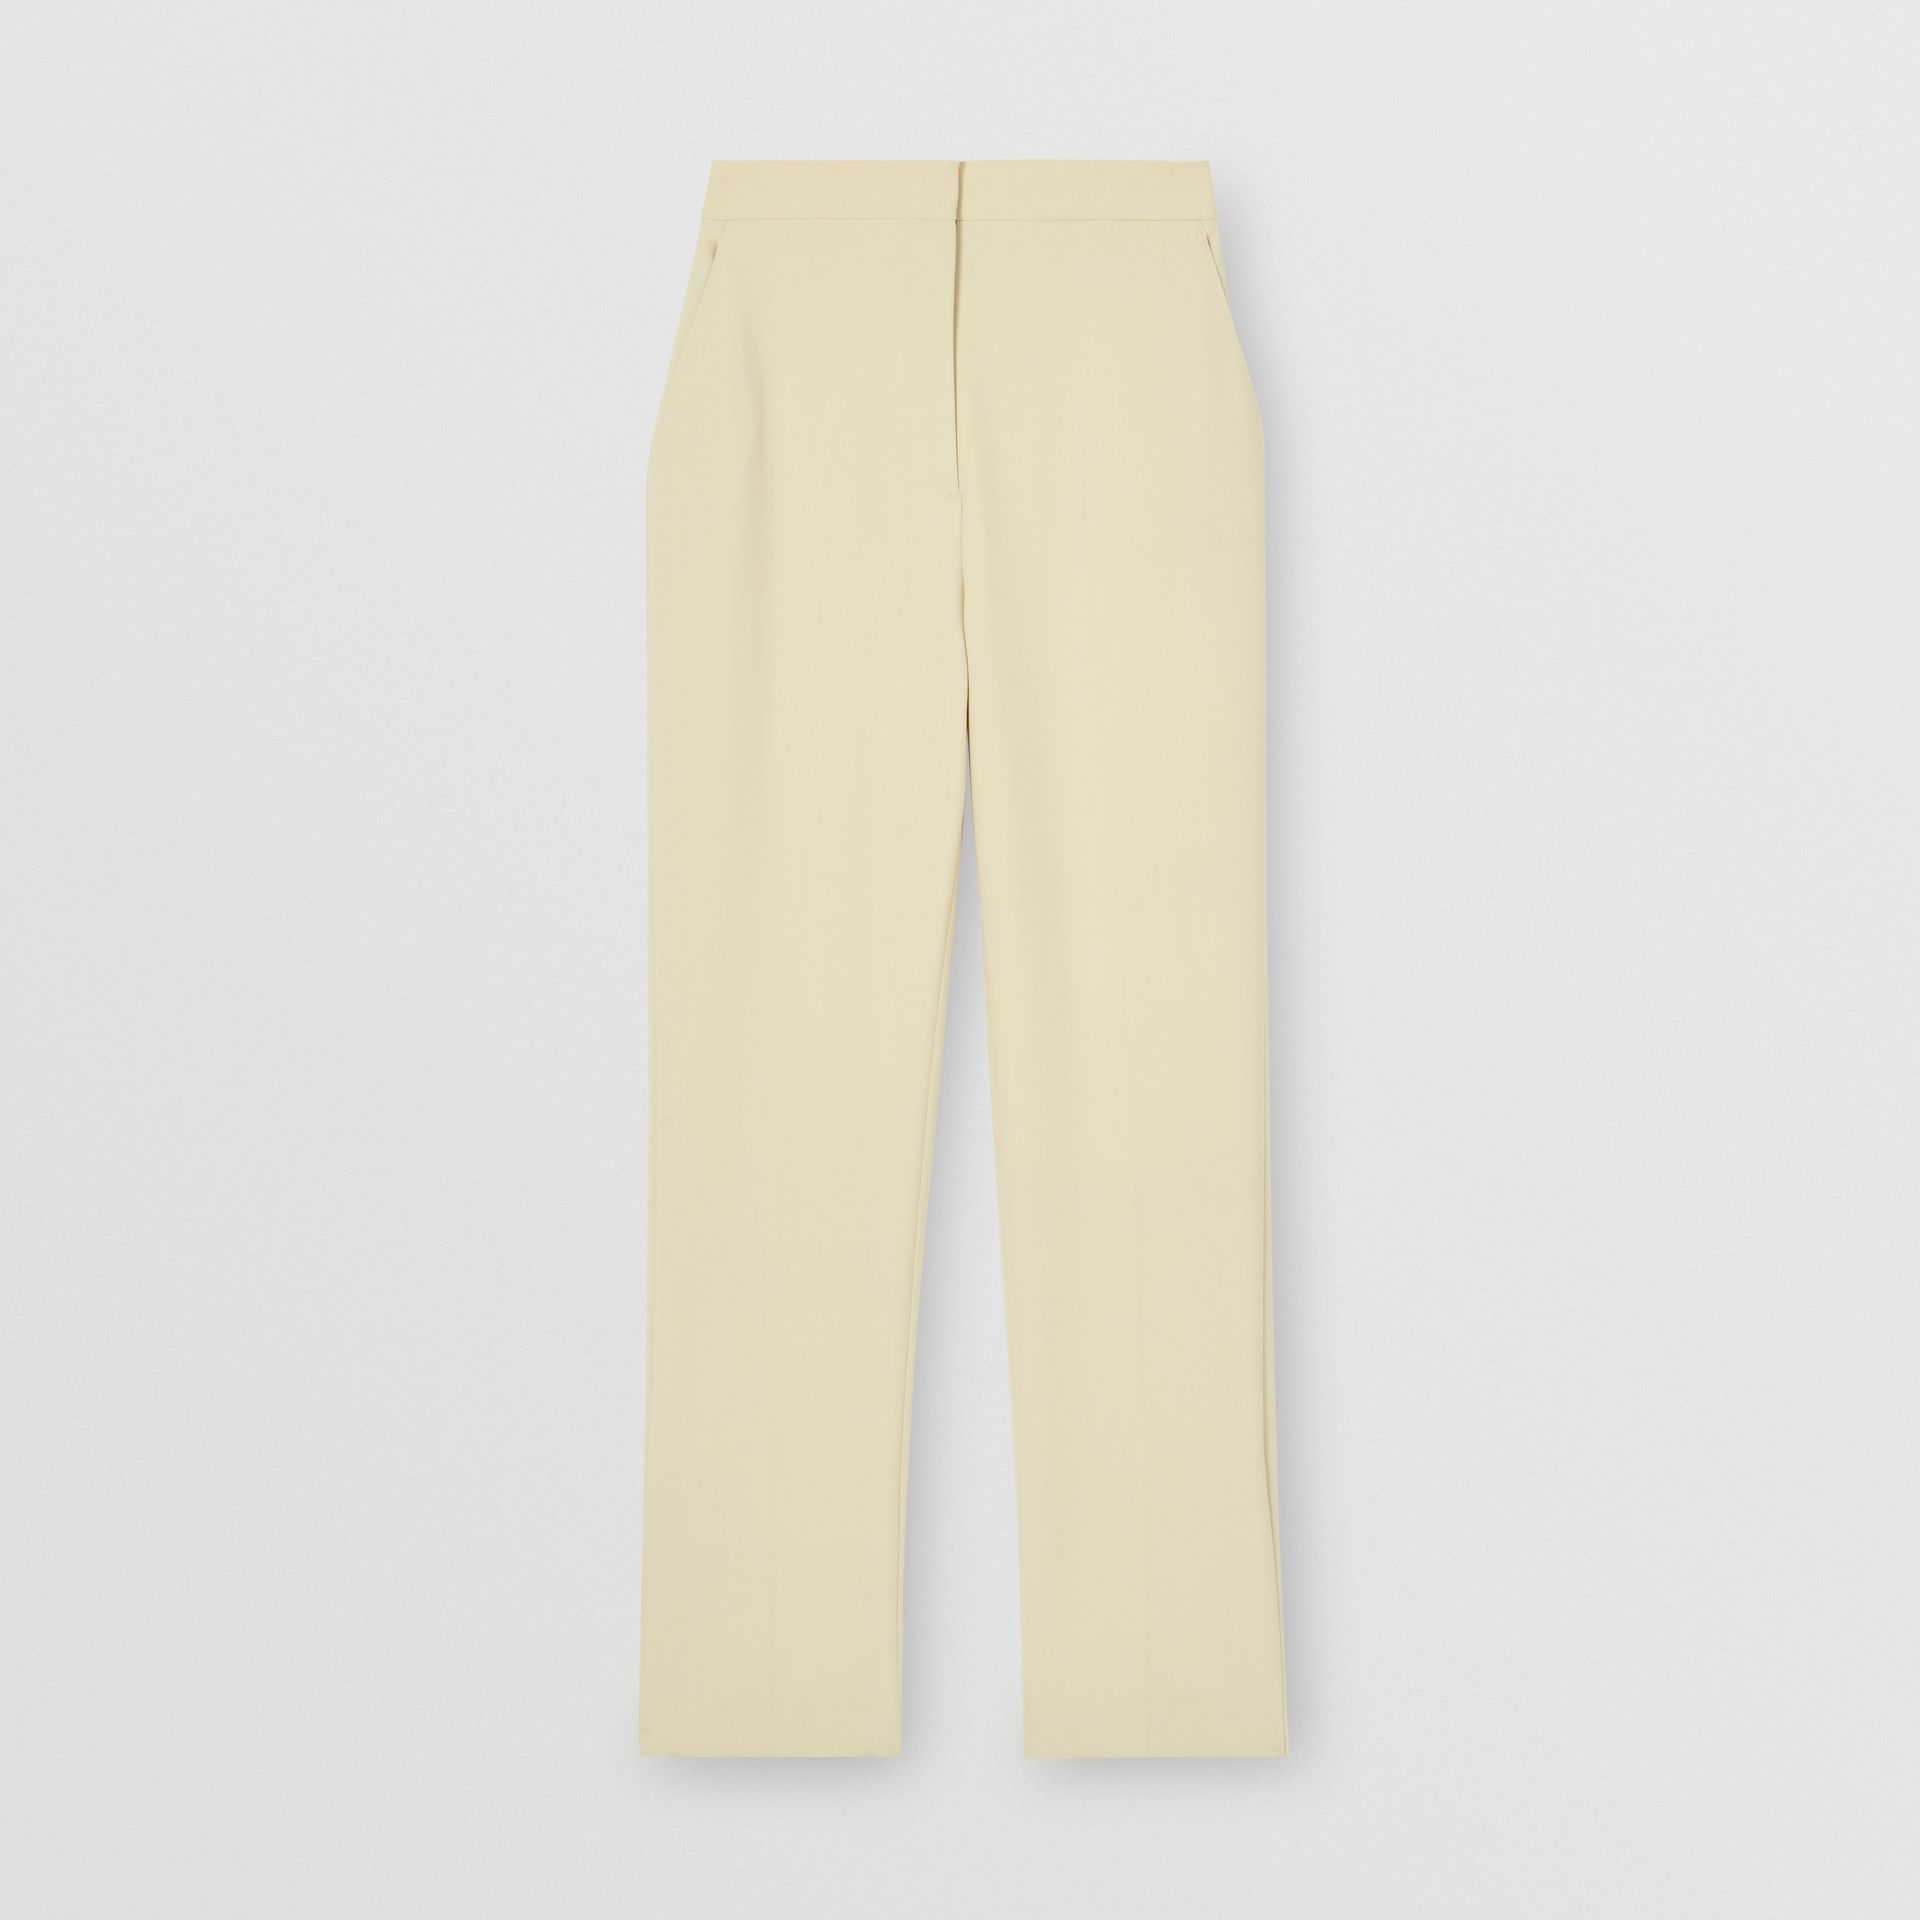 Pantalon tailleur droit en laine stretch (Ocre Pâle) - Femme | Burberry - photo de la galerie 3